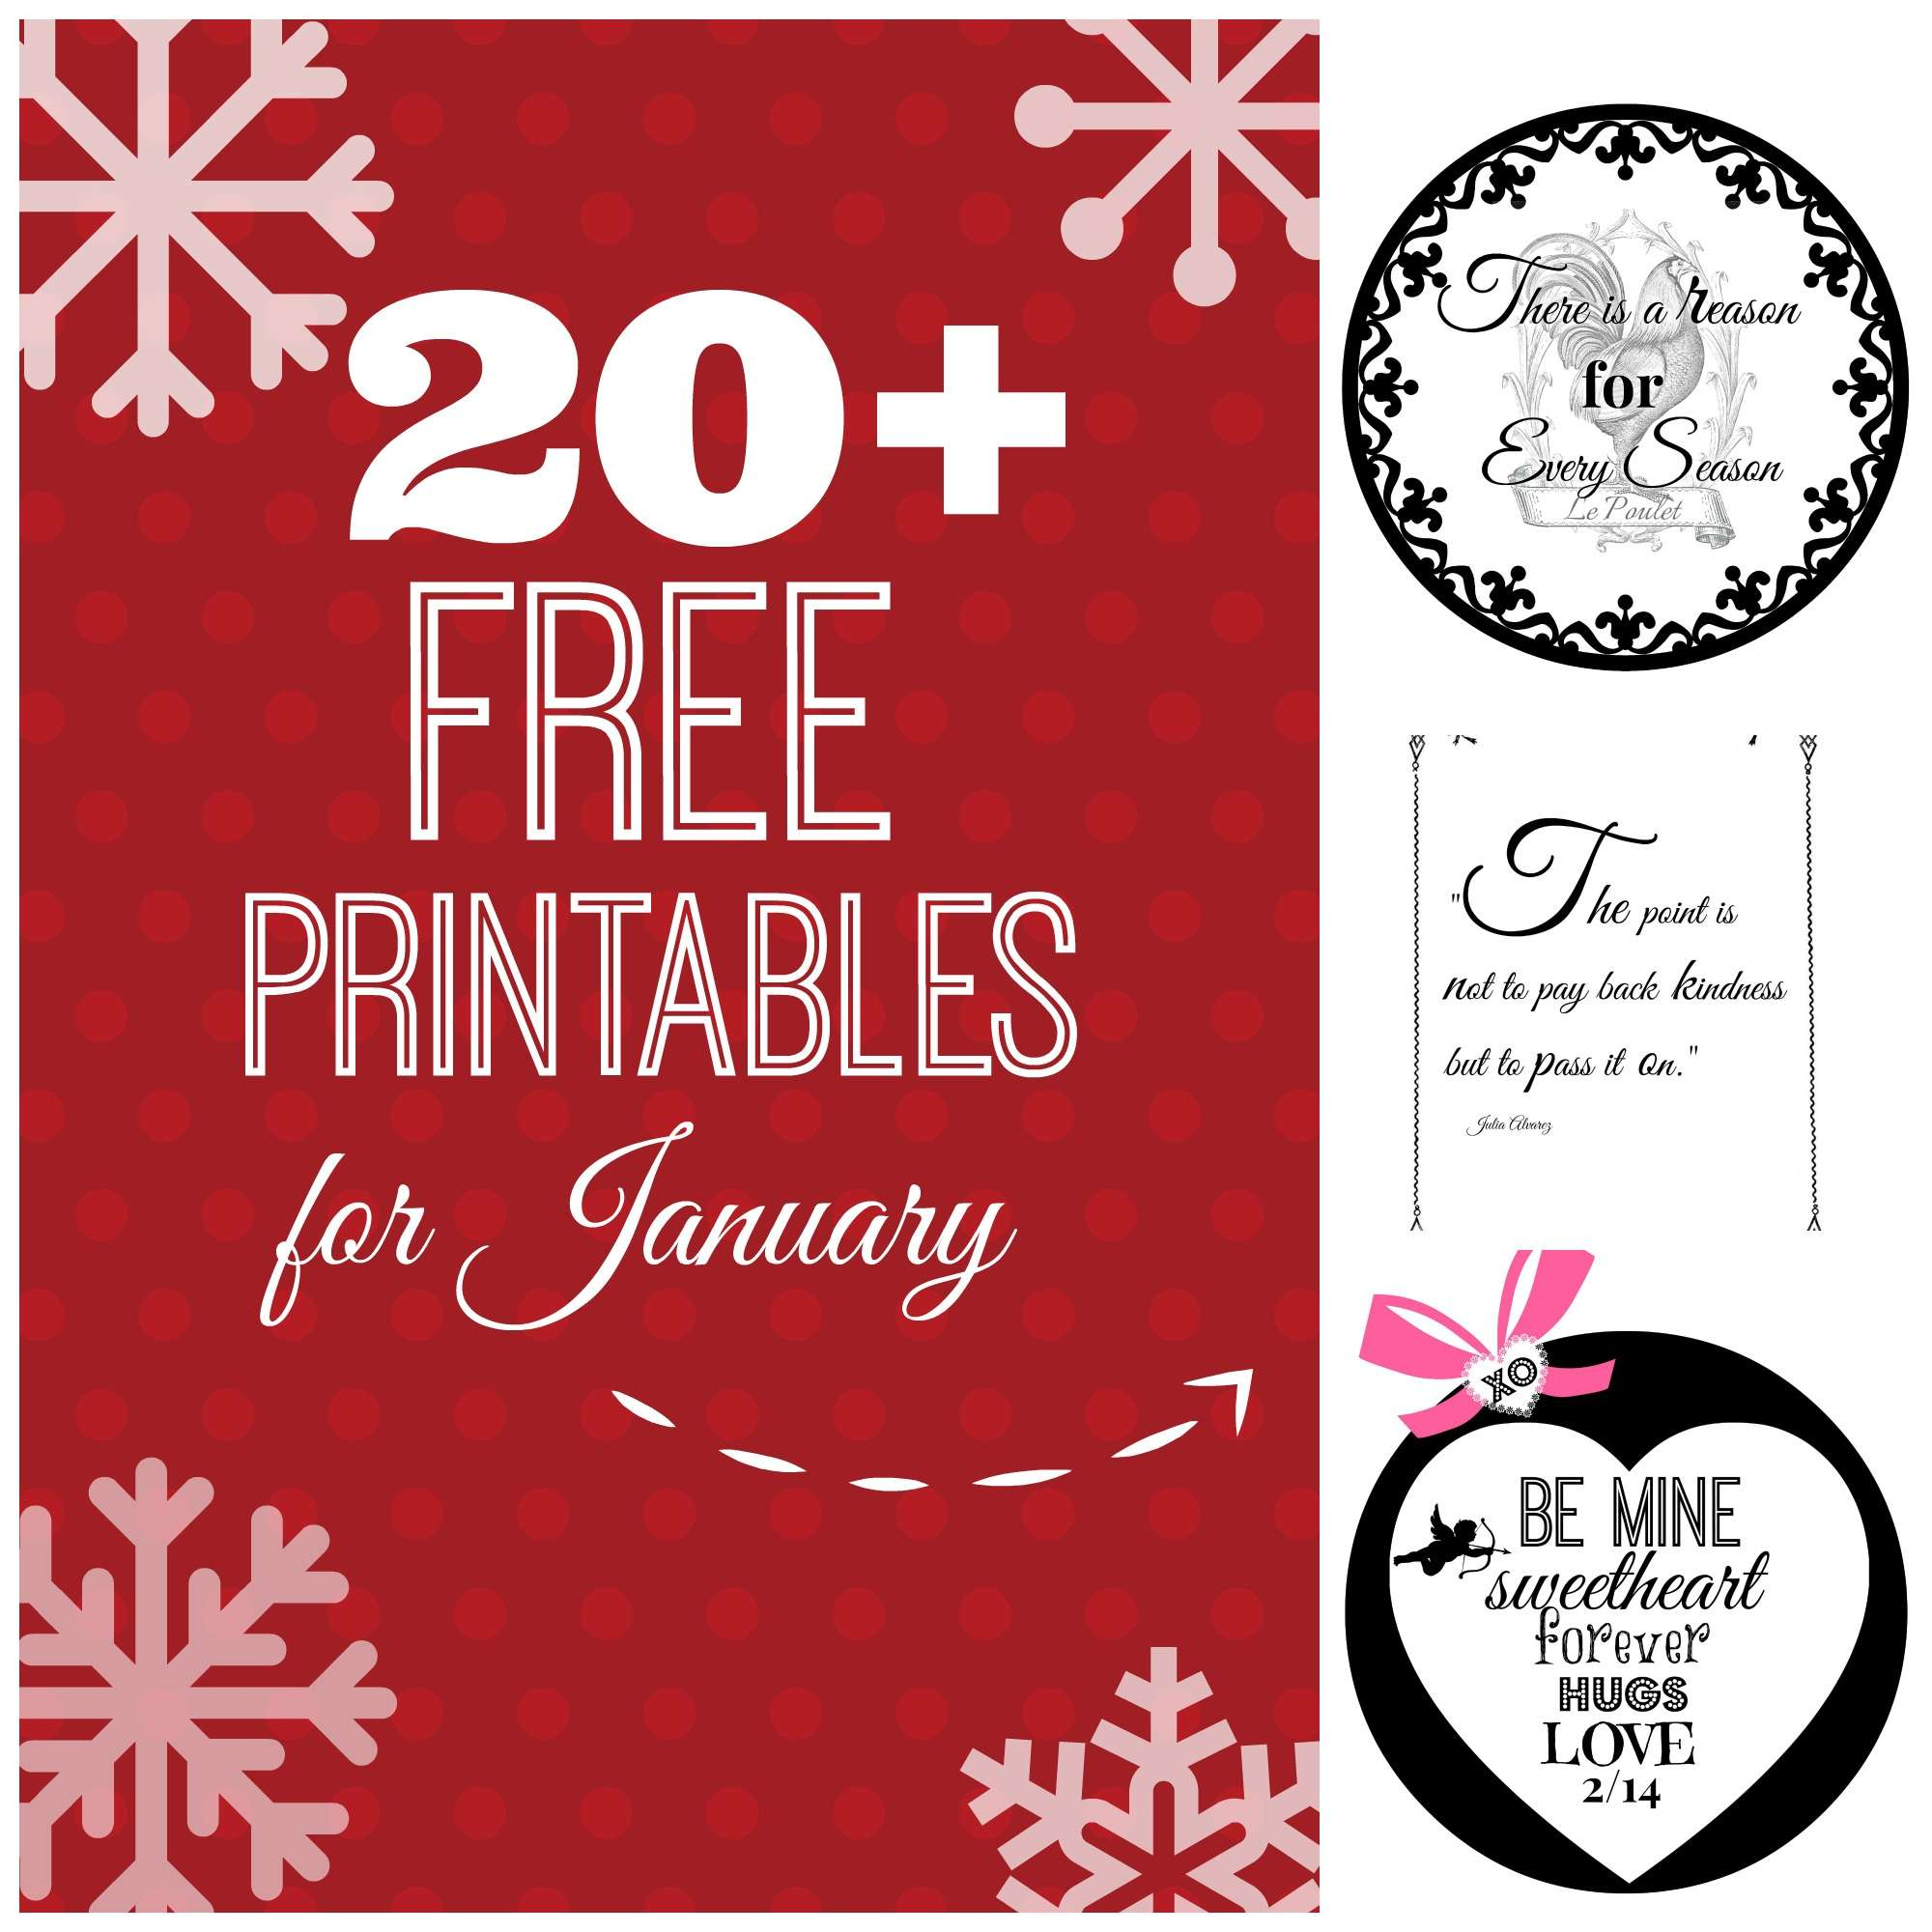 20 Free Printables For January